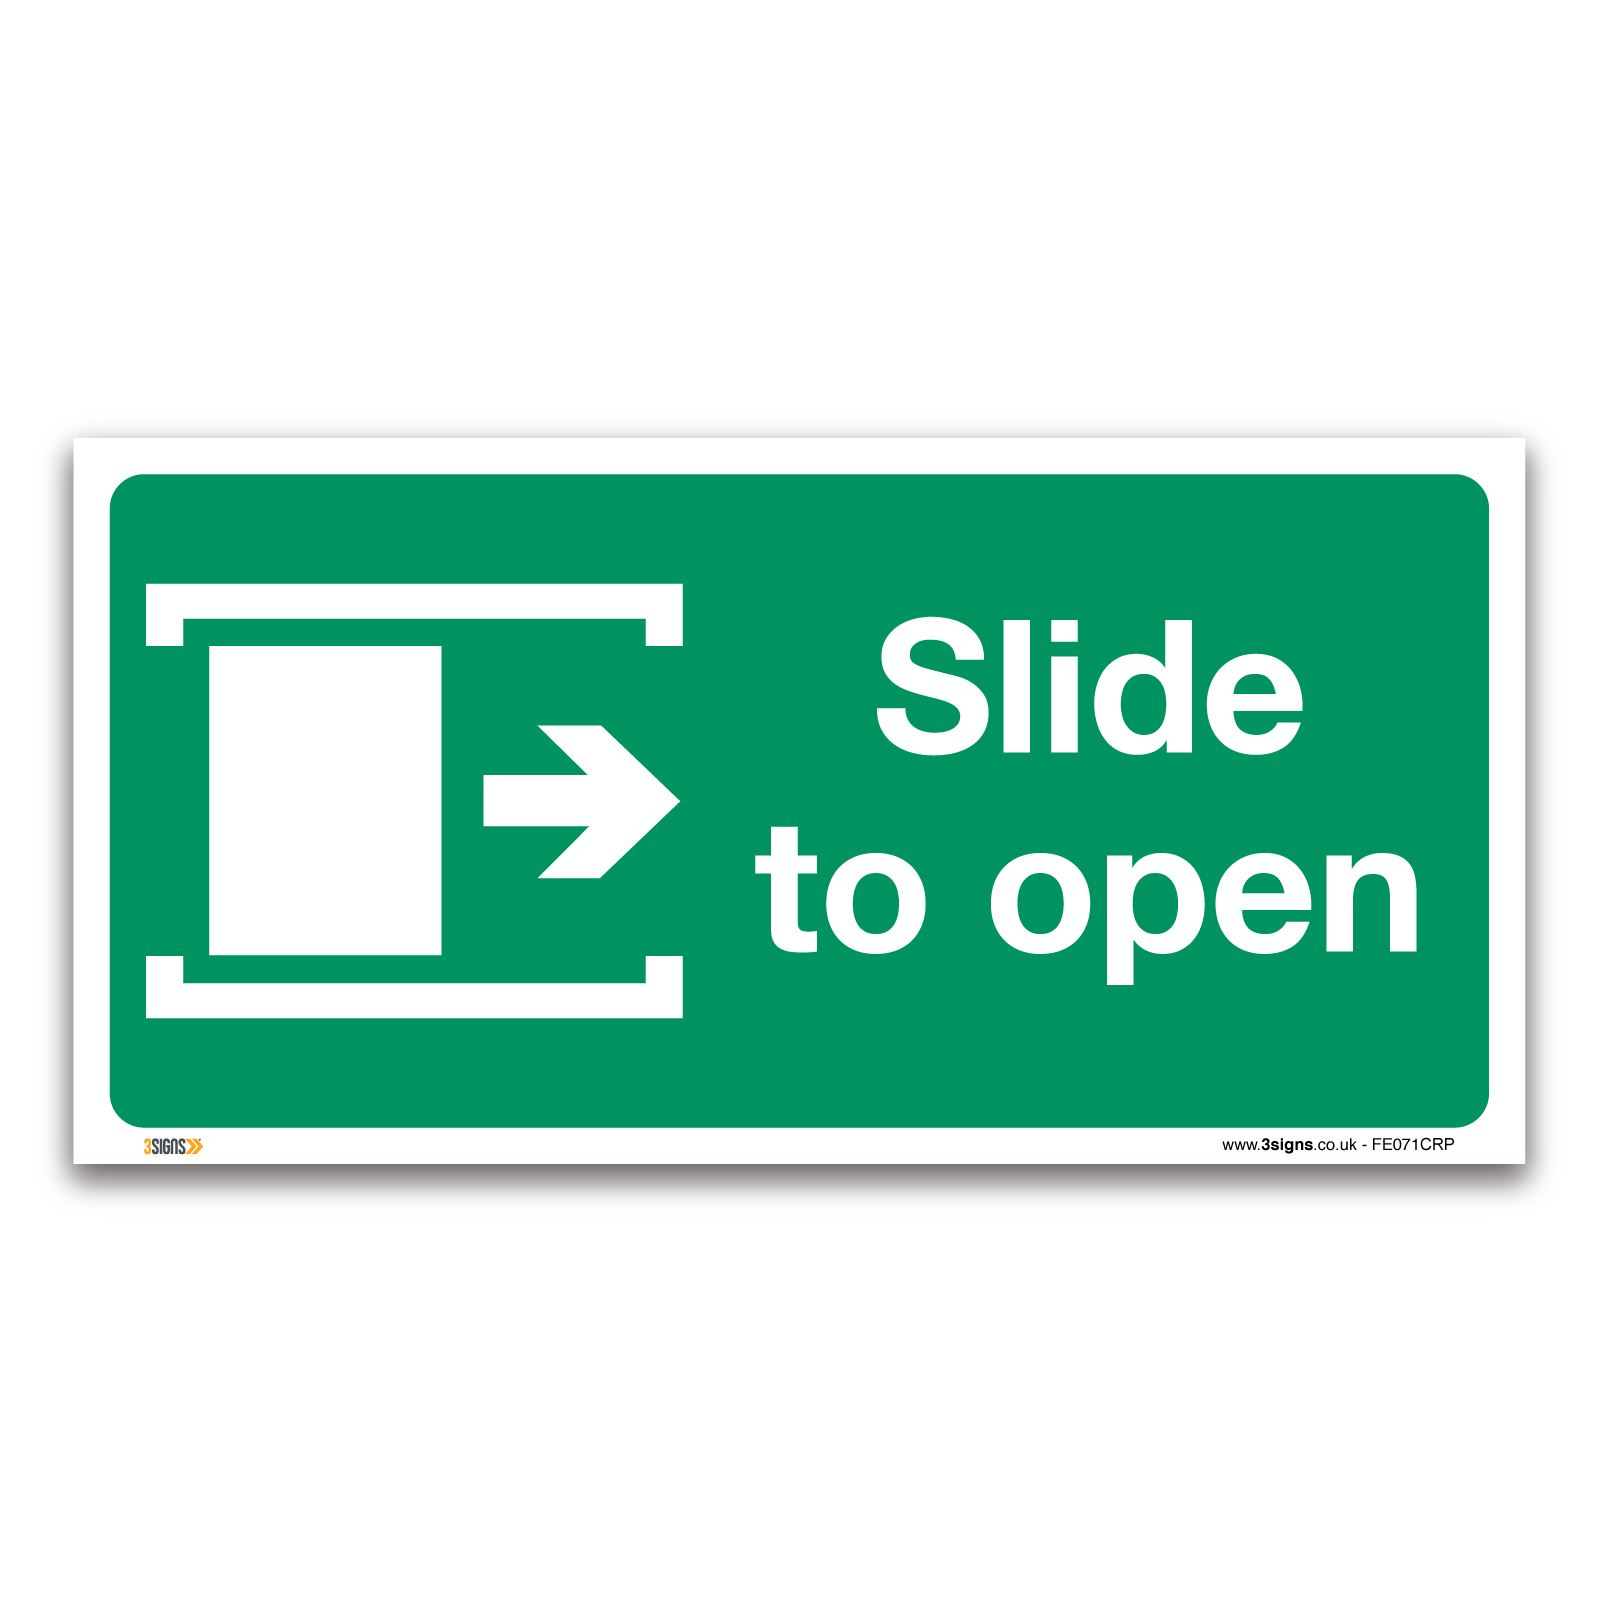 Slide to open right Fire exit Sign Plastic or Vinyl Sticker Safety Door Signs